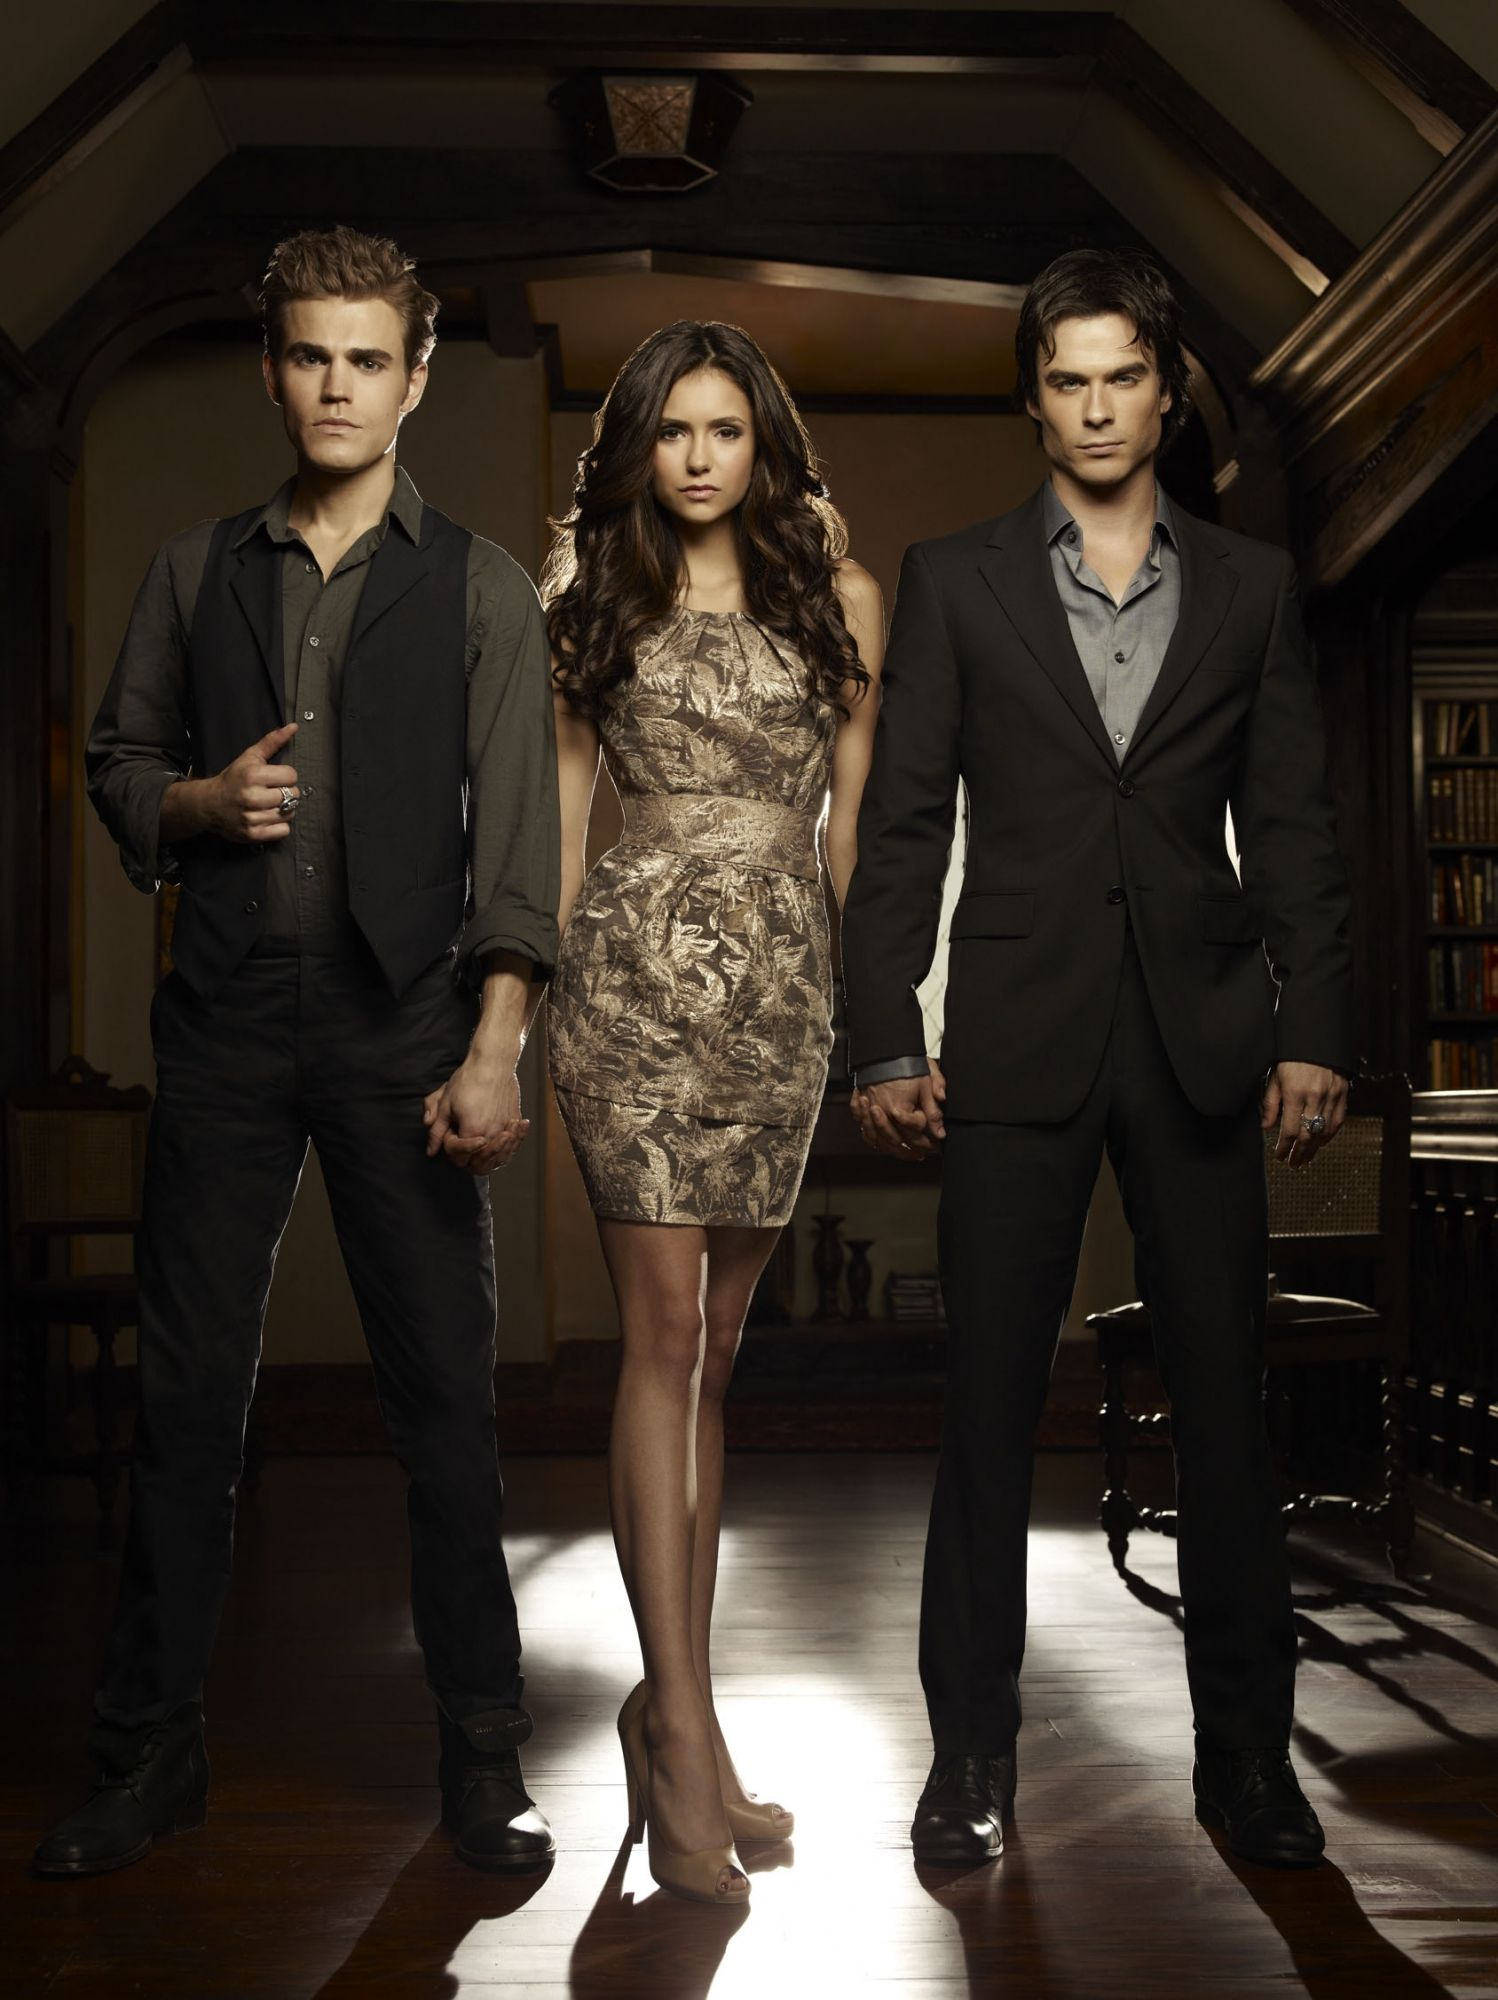 VampireDiariesS2_001.jpg